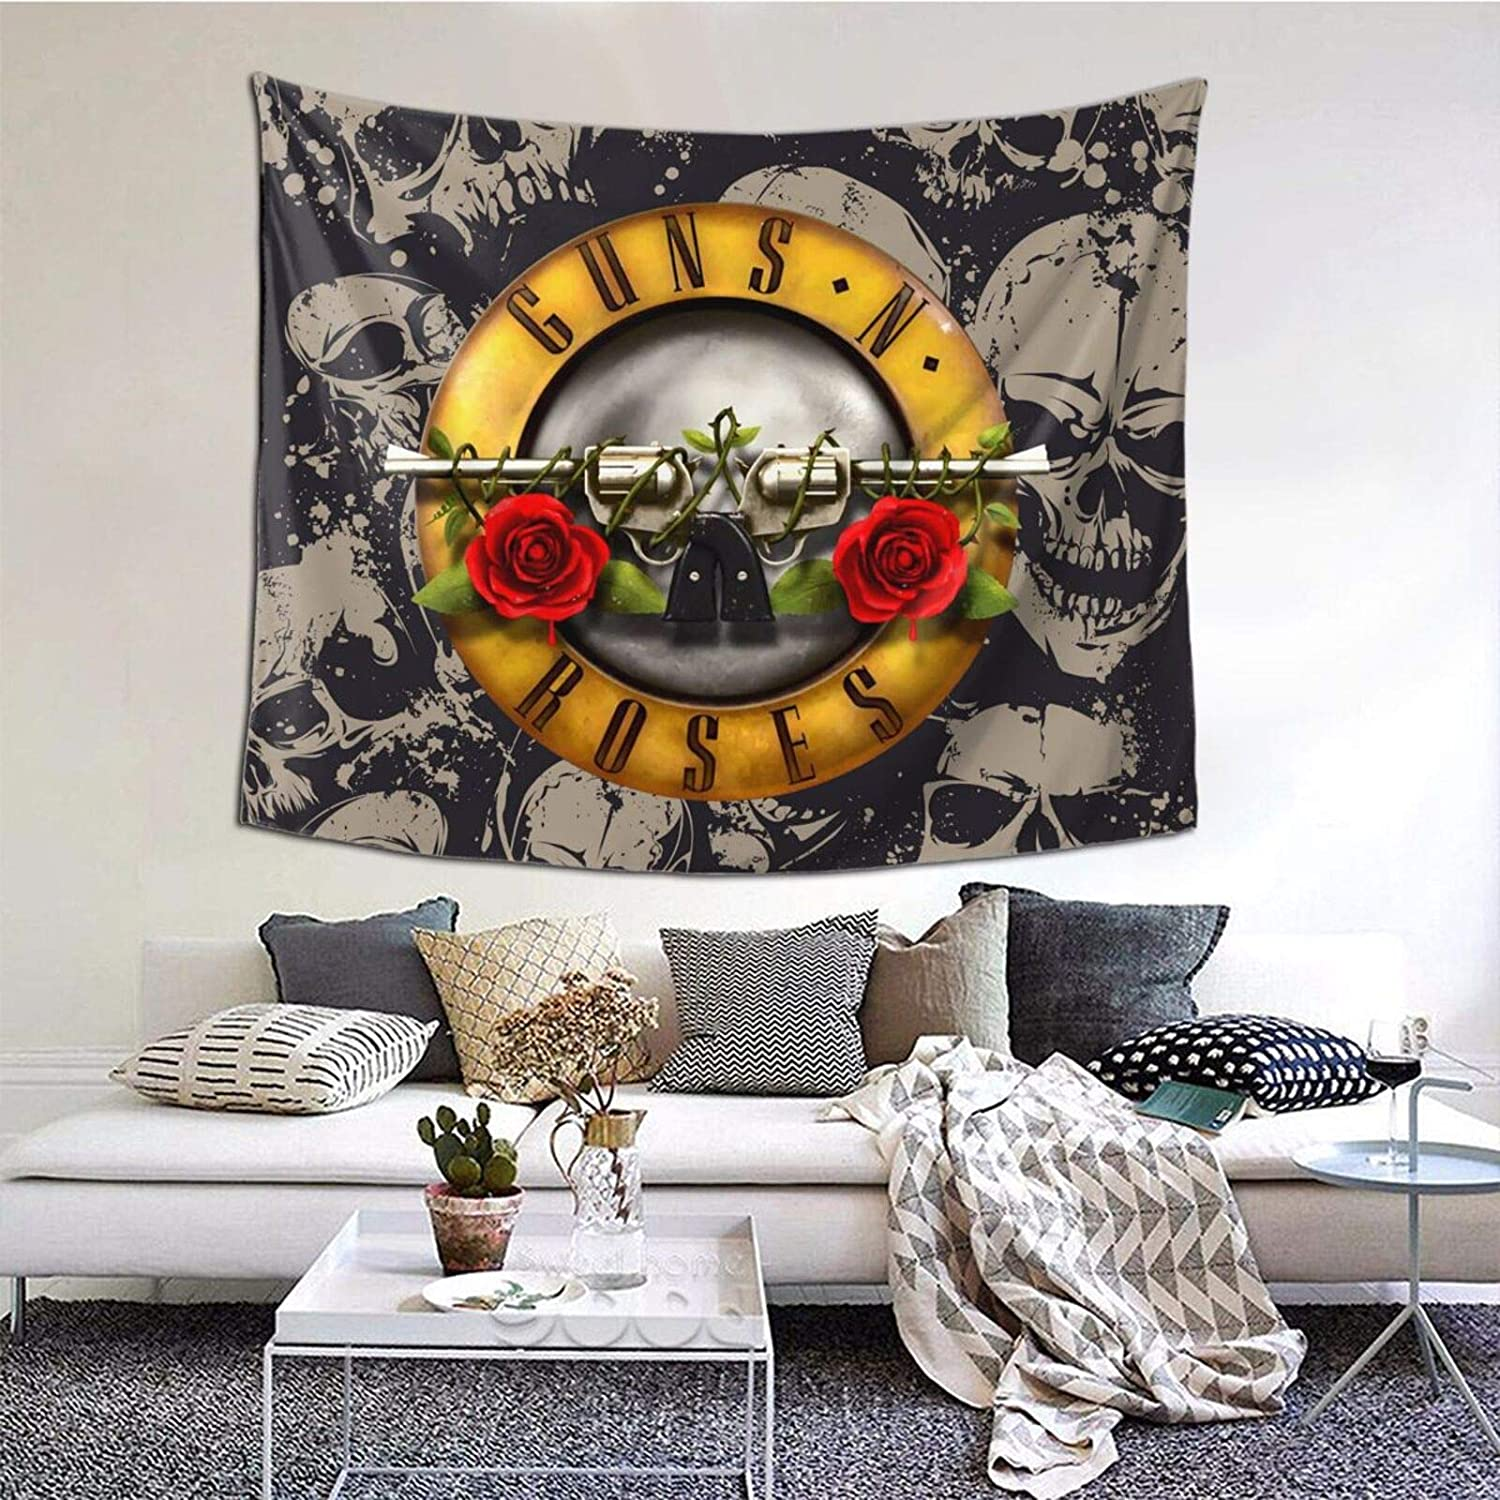 Guns N Roses Appetite for Destruction Tapestry Art Style Home Decorations Wall Hanging Living Room Bedroom Dorm Room Wall Decor Wall Hanging 60 X 51 Inch